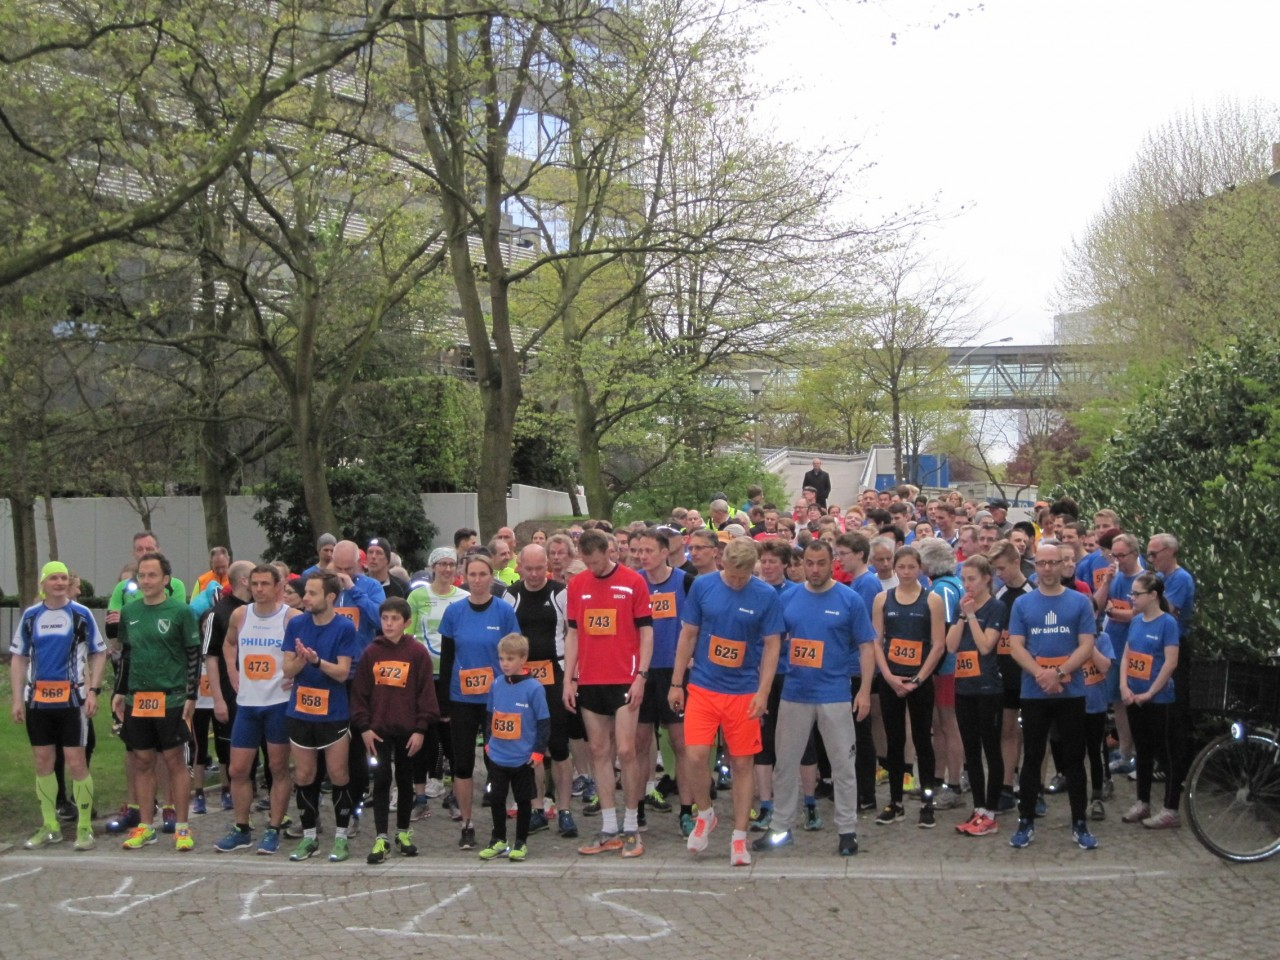 City Nord Lauf, 11.05.2017